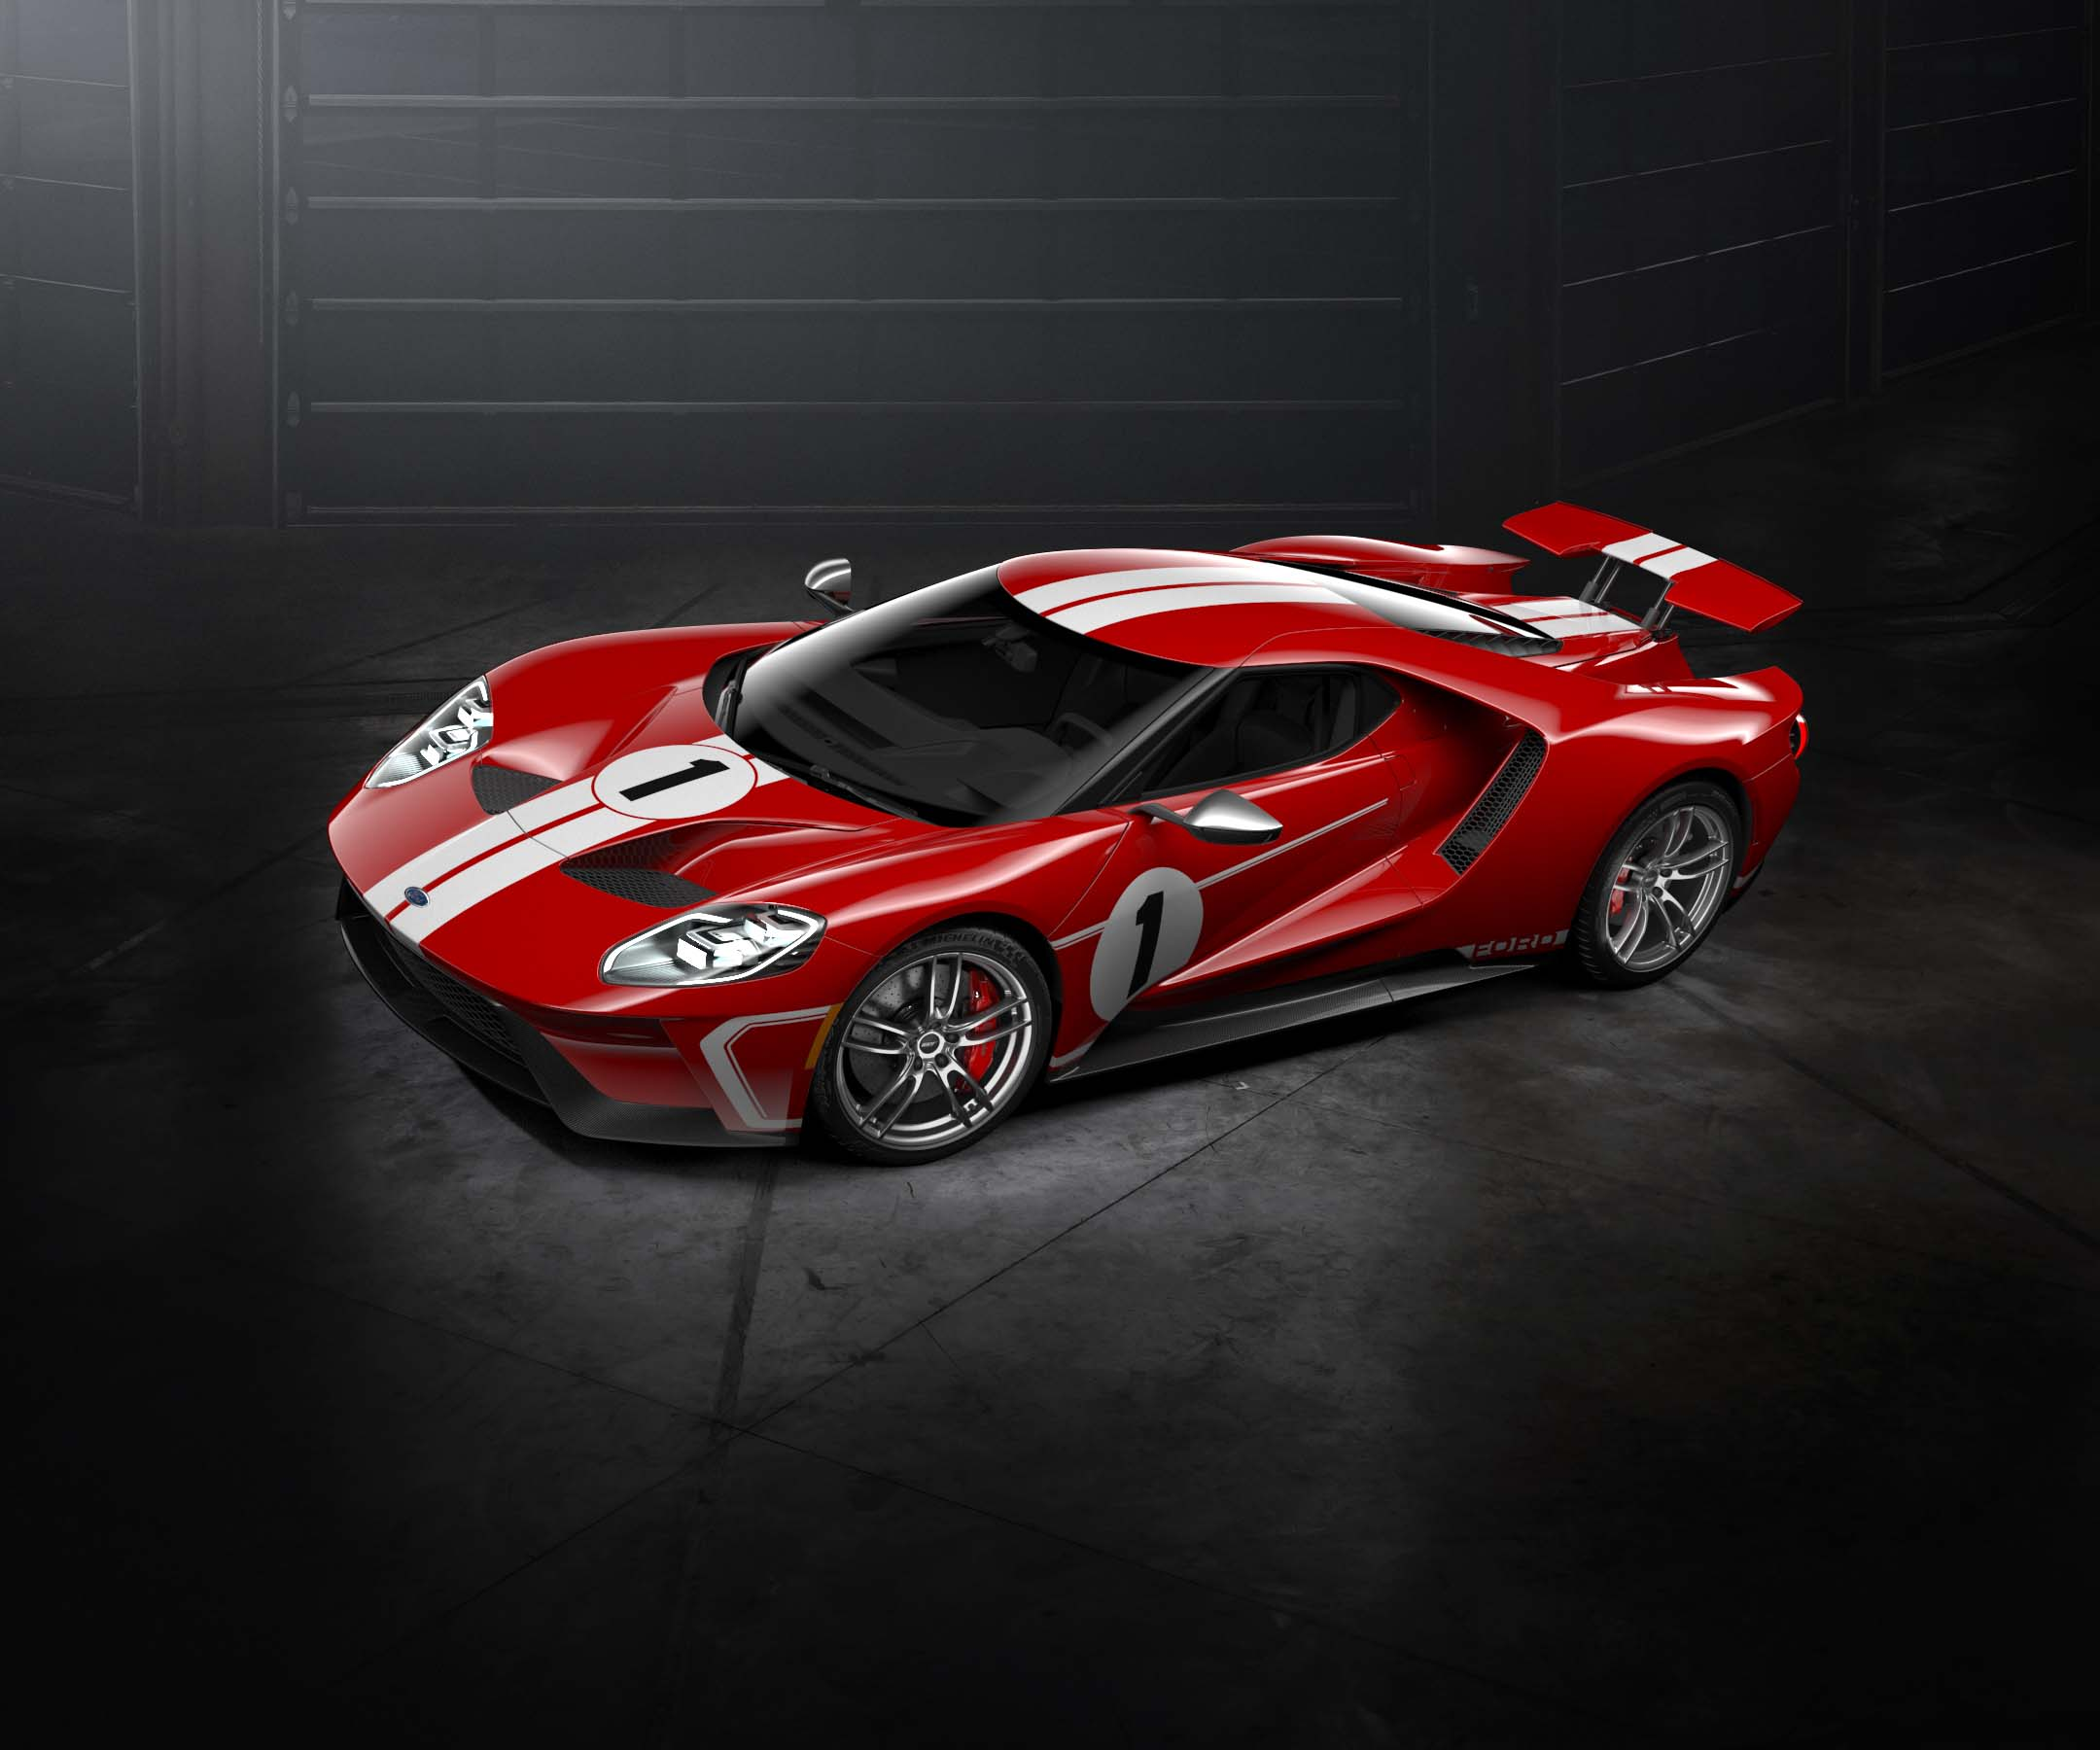 2018 Ford Gt Heritage Edition To Honor 1967 Le Mans Winner